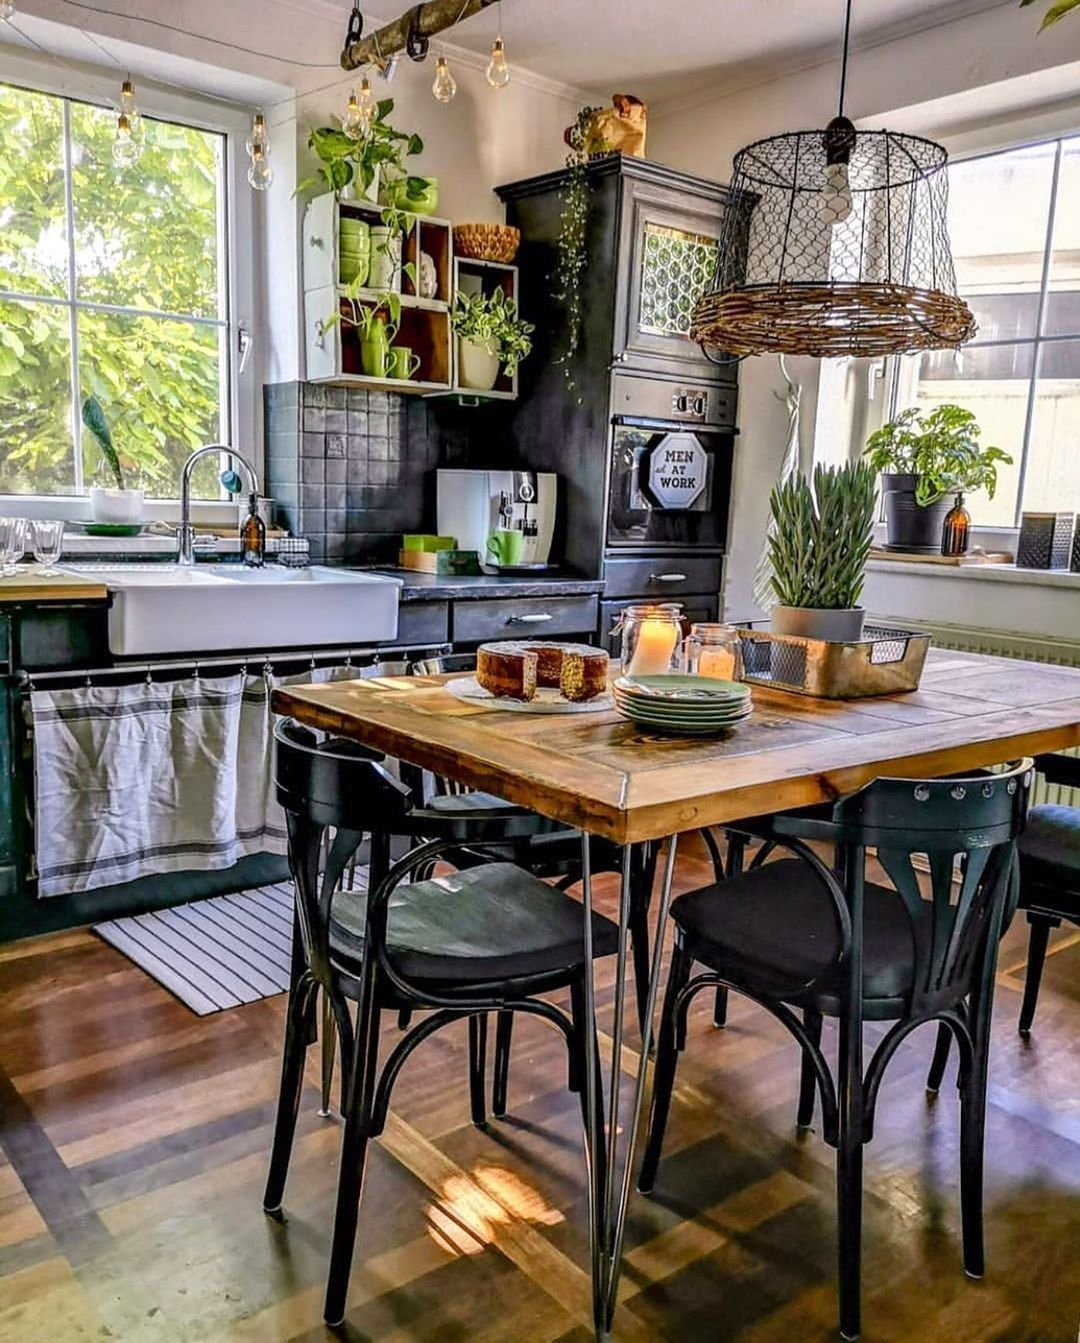 modern bohemian kitchen designs with images bohemian kitchen kitchen design beautiful kitchens on boho chic home decor kitchen id=37426